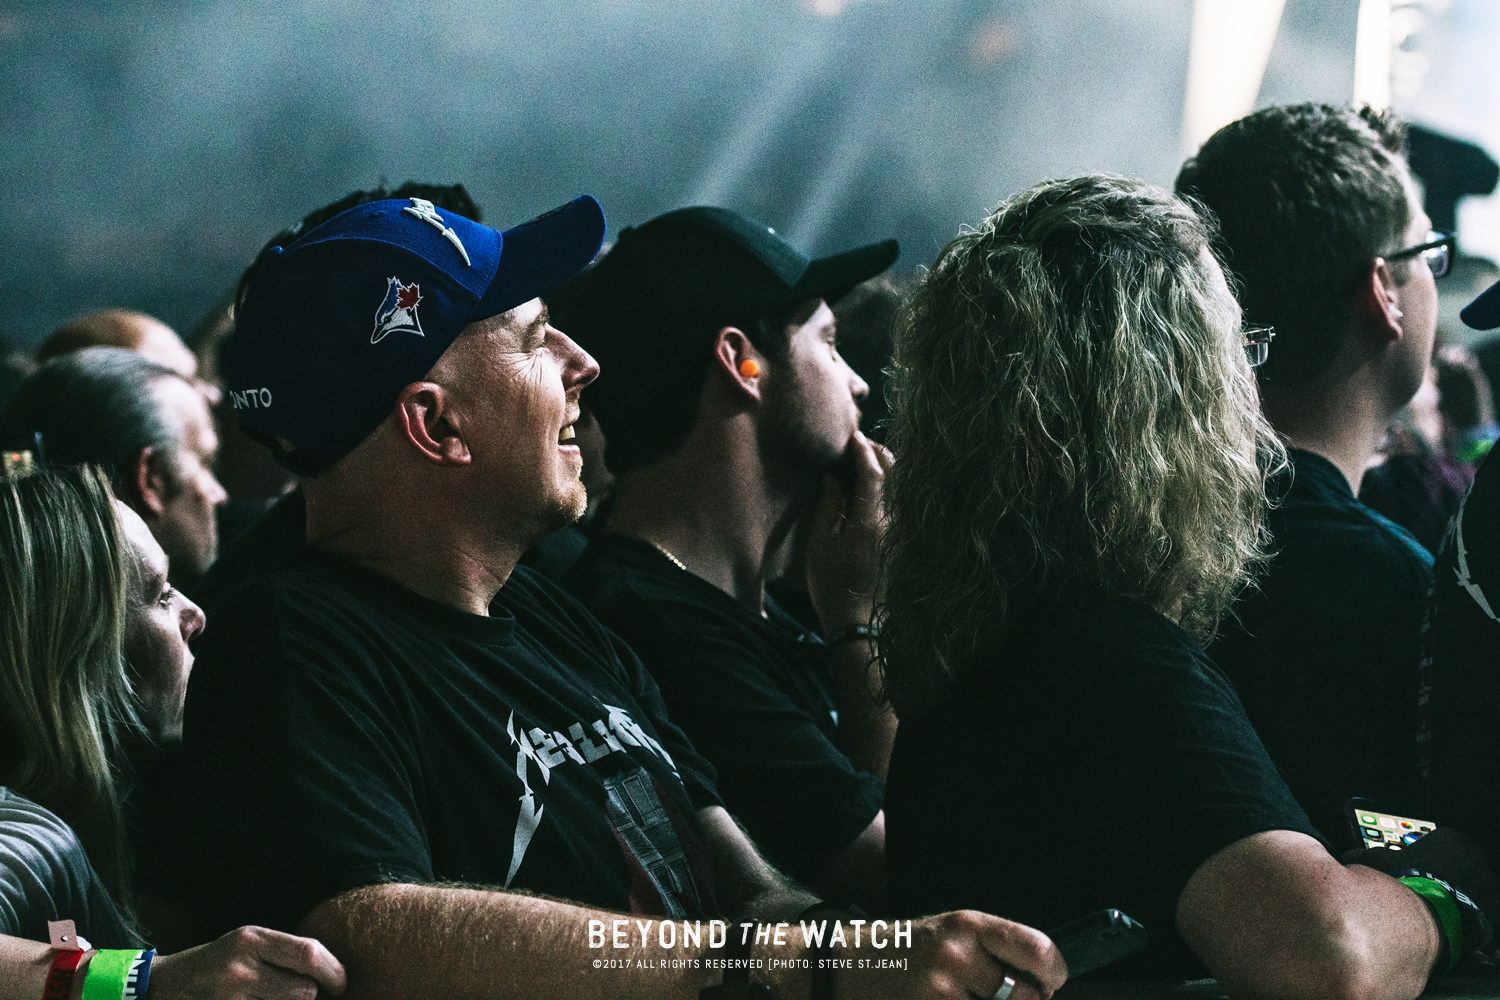 Gazing fans. Everyone looked like they were in complete shock watching Metallica. It was that good.